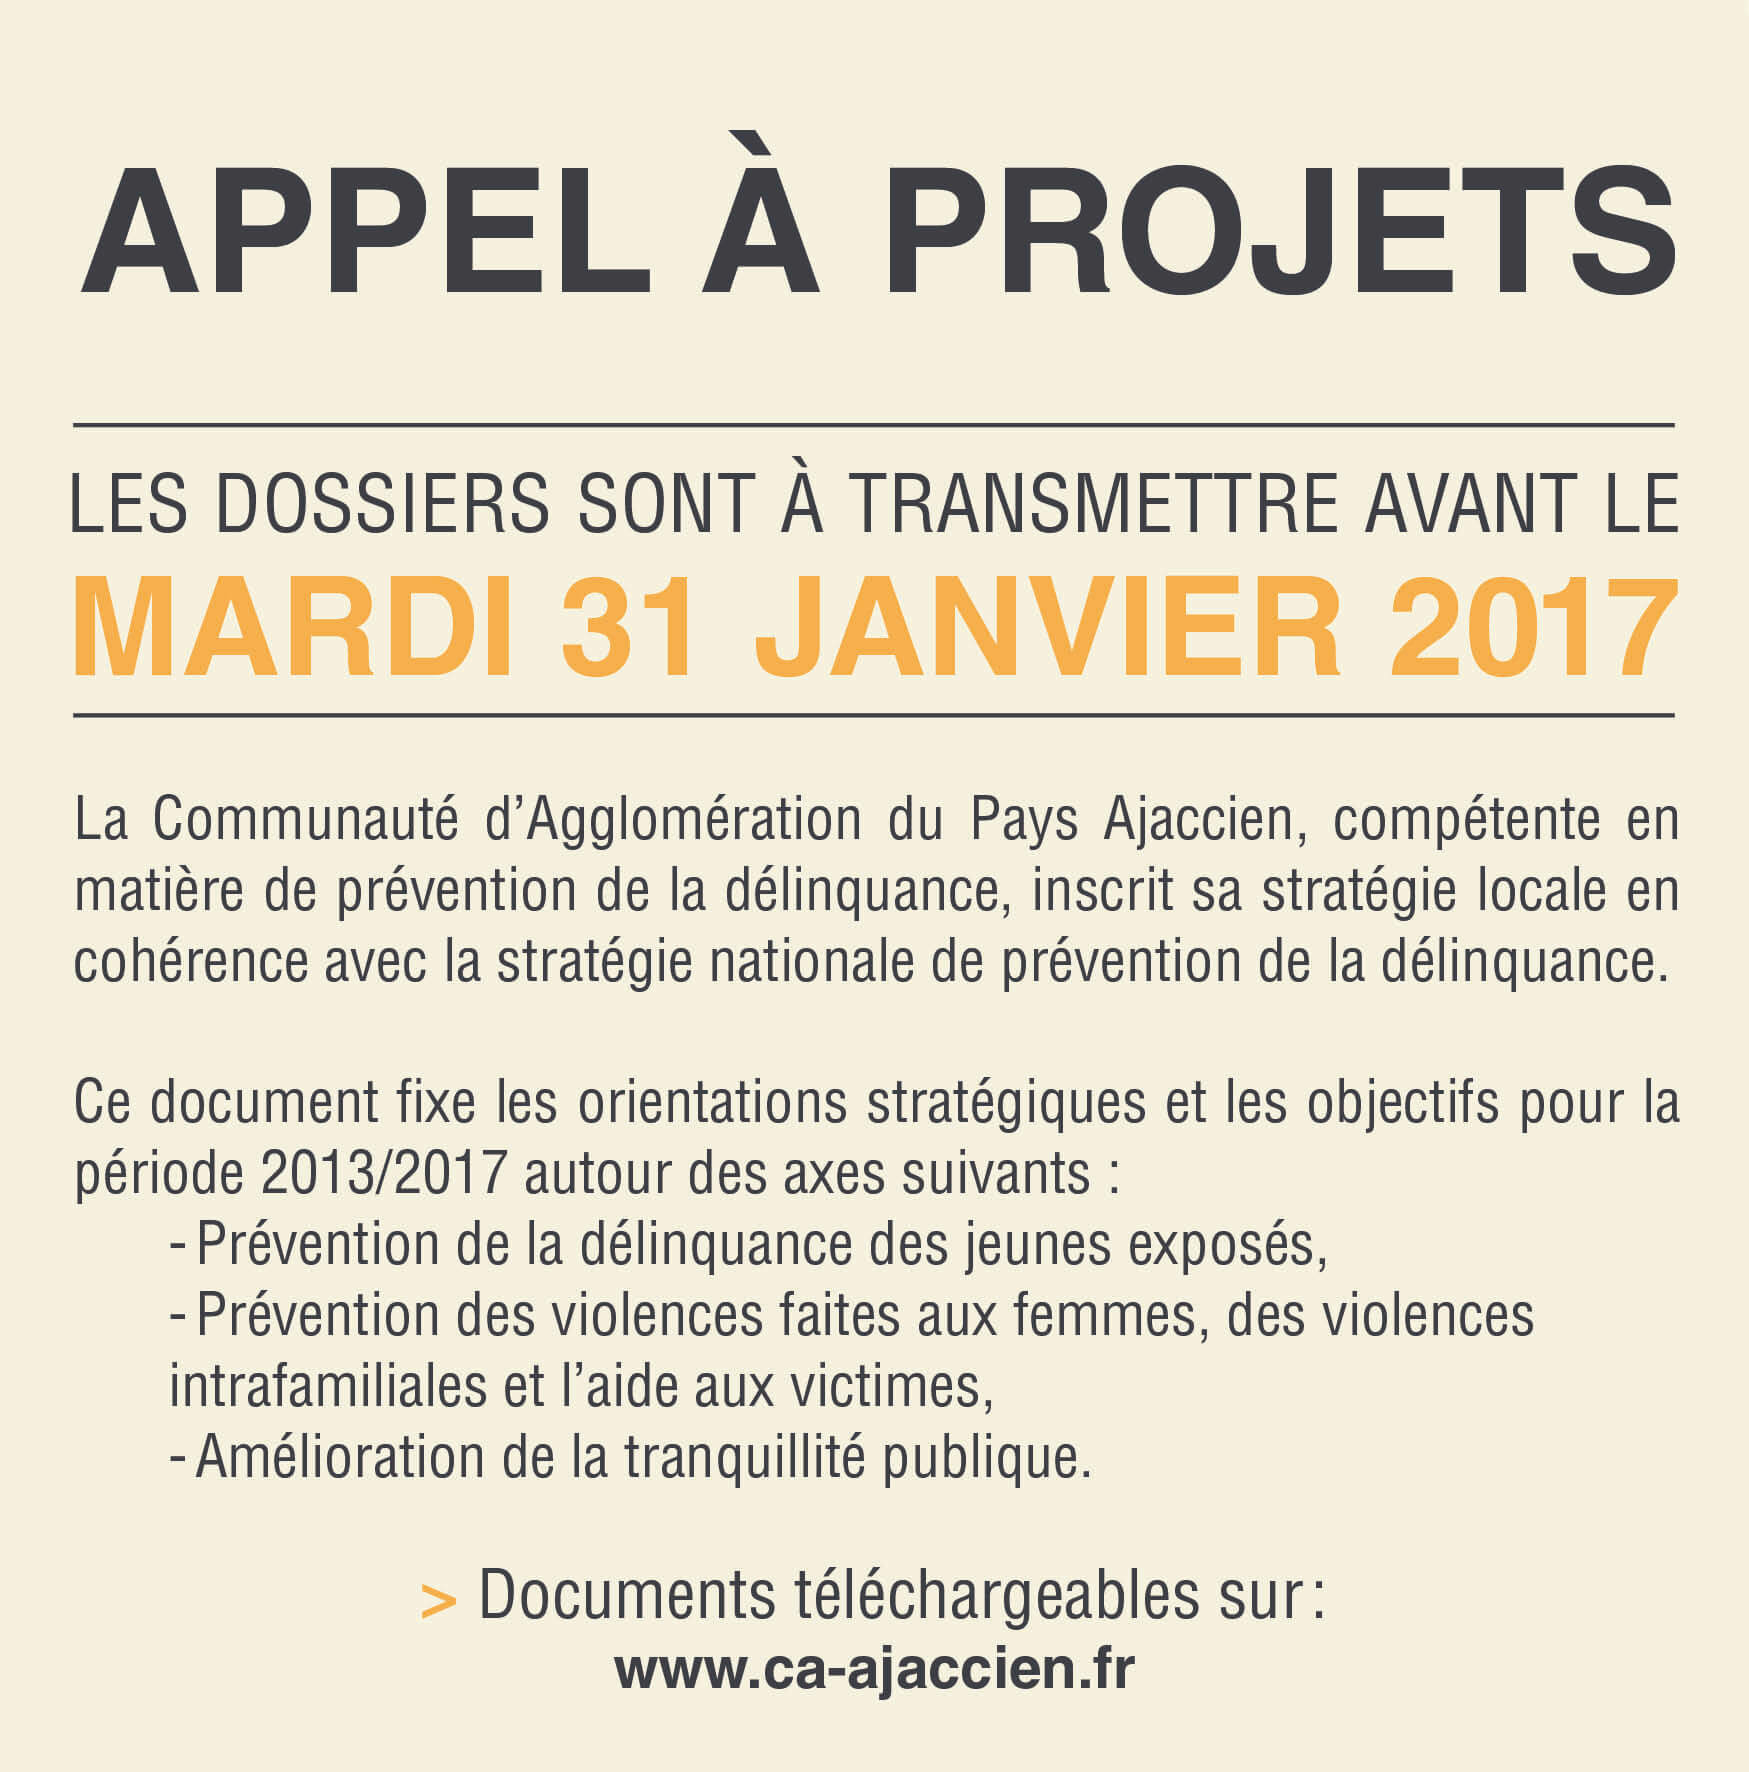 APPEL A PROJETS CONSEIL INTERCOMMUNAL DE SECURITE ET PREVENTION DE LA DELINQUANCE